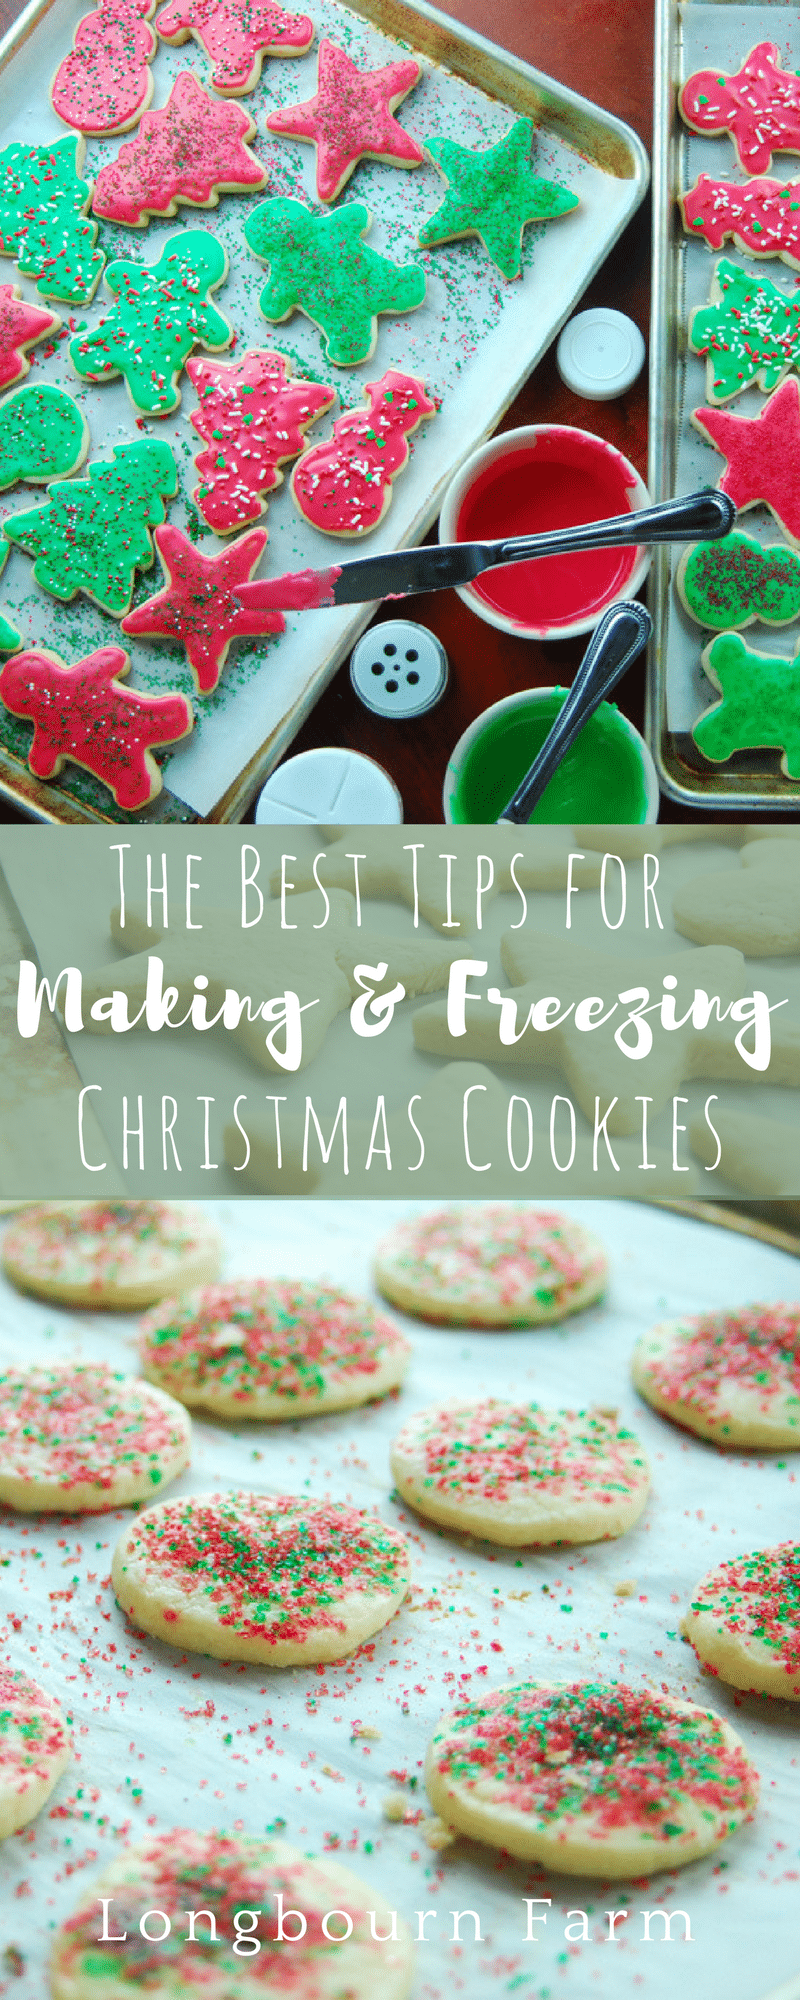 Get tips for making, storing, and freezing the best Christmas cookie recipes! These tips make getting ready for any family Christmas party a breeze!